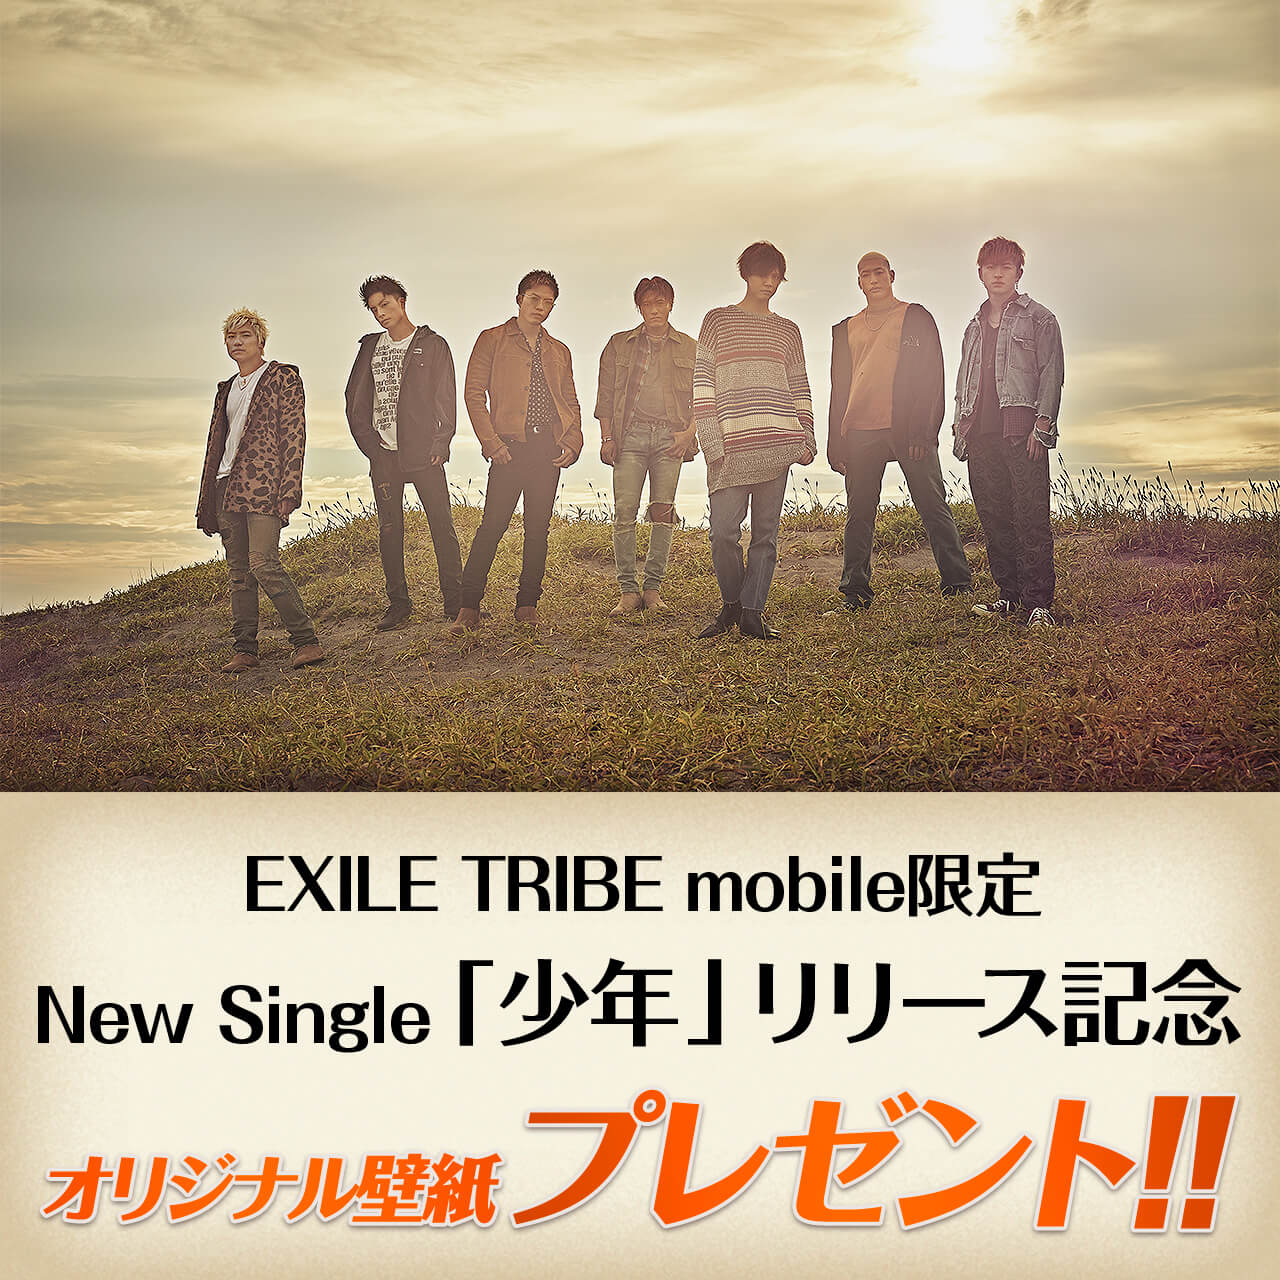 New Single 少年 期間限定 オリジナル壁紙プレゼント Exile